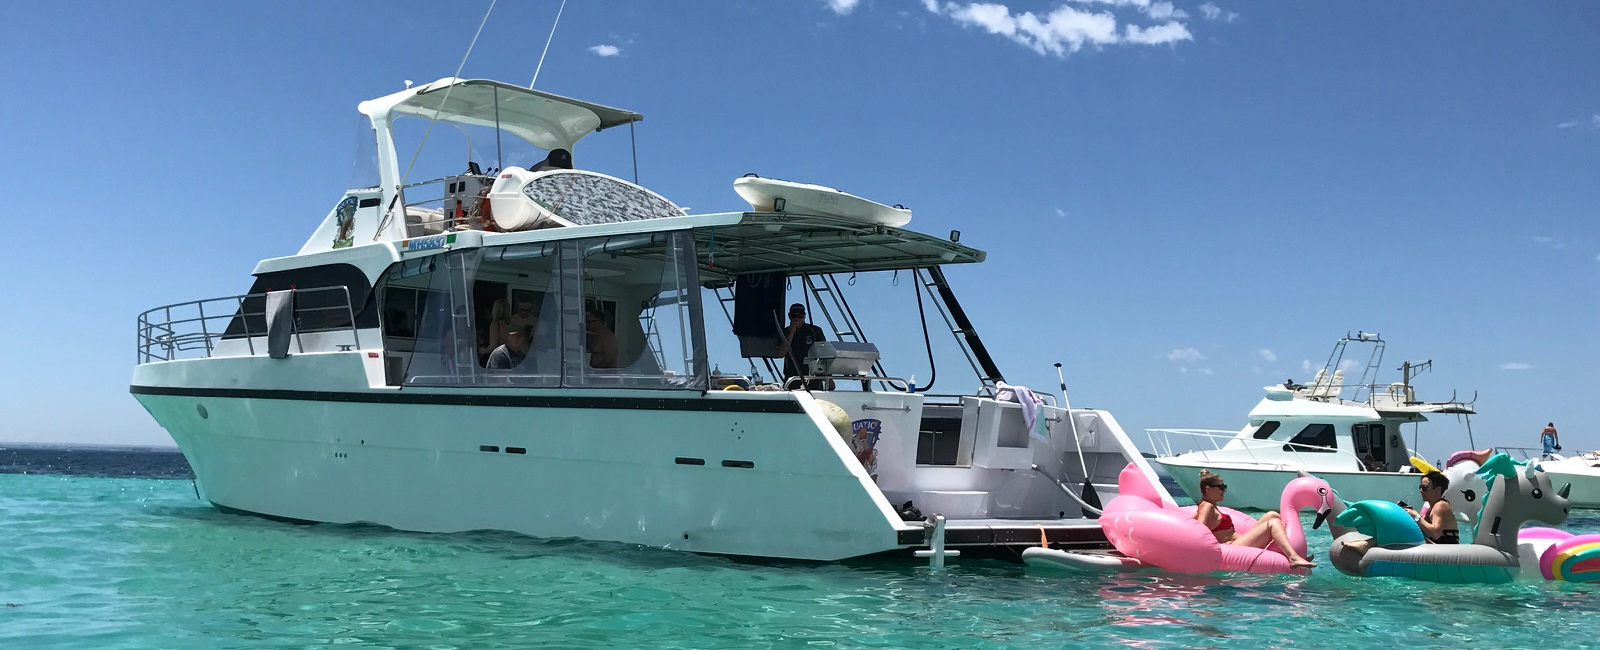 DARLING ISABELLE-boat-charter-hire-perth-wa-rottnest-island-cruises